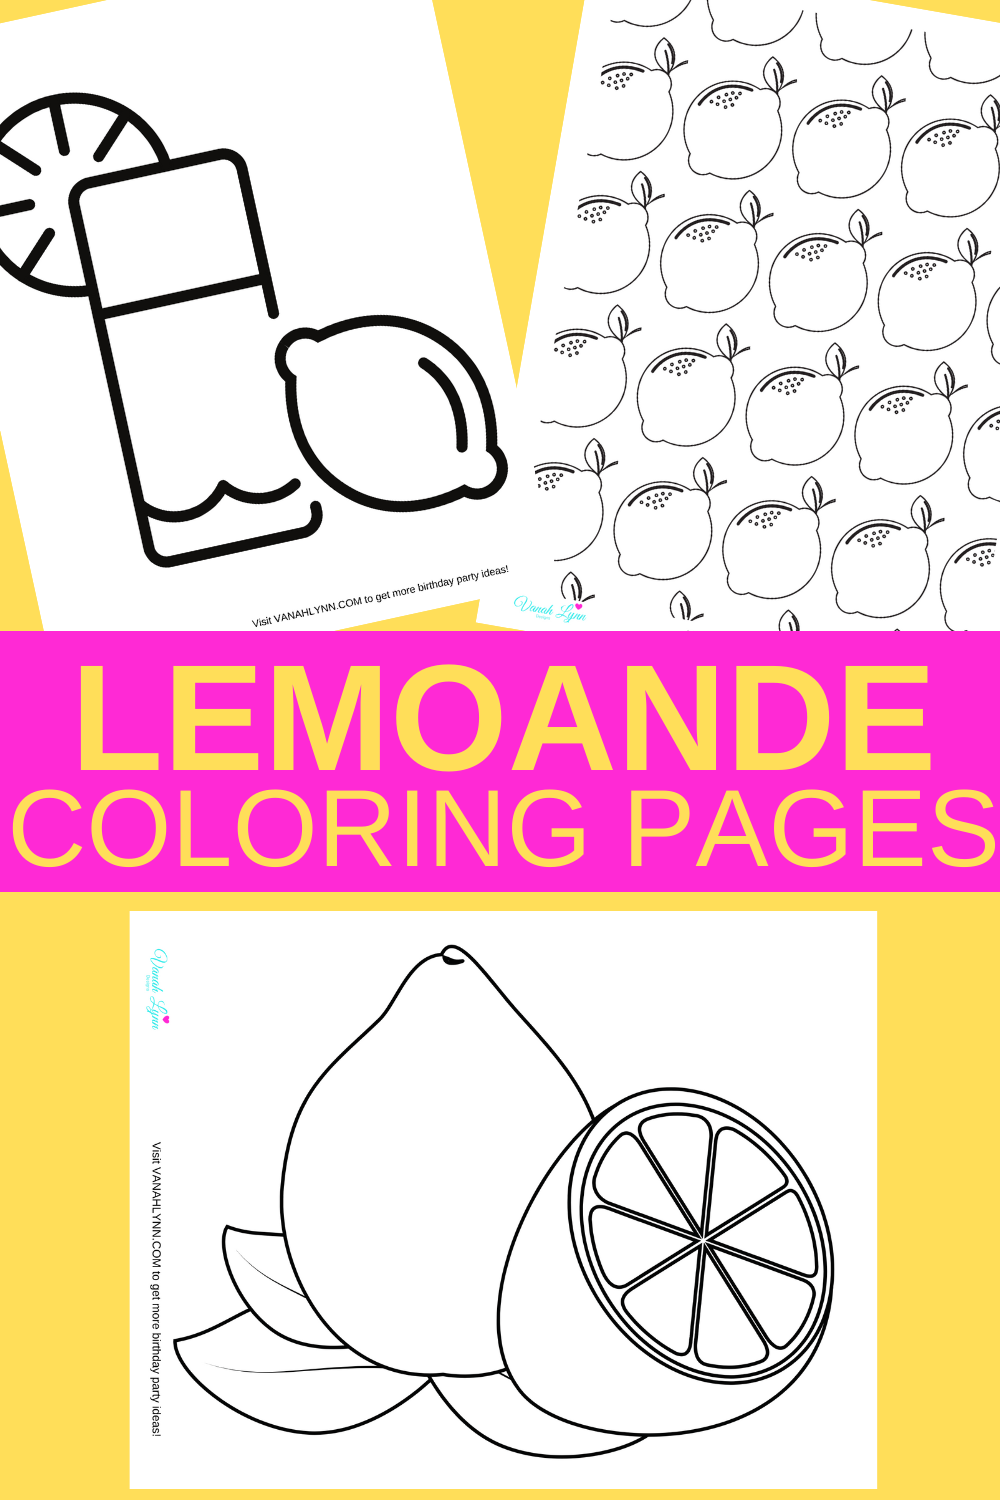 free printable coloring pages: Lemonade themed